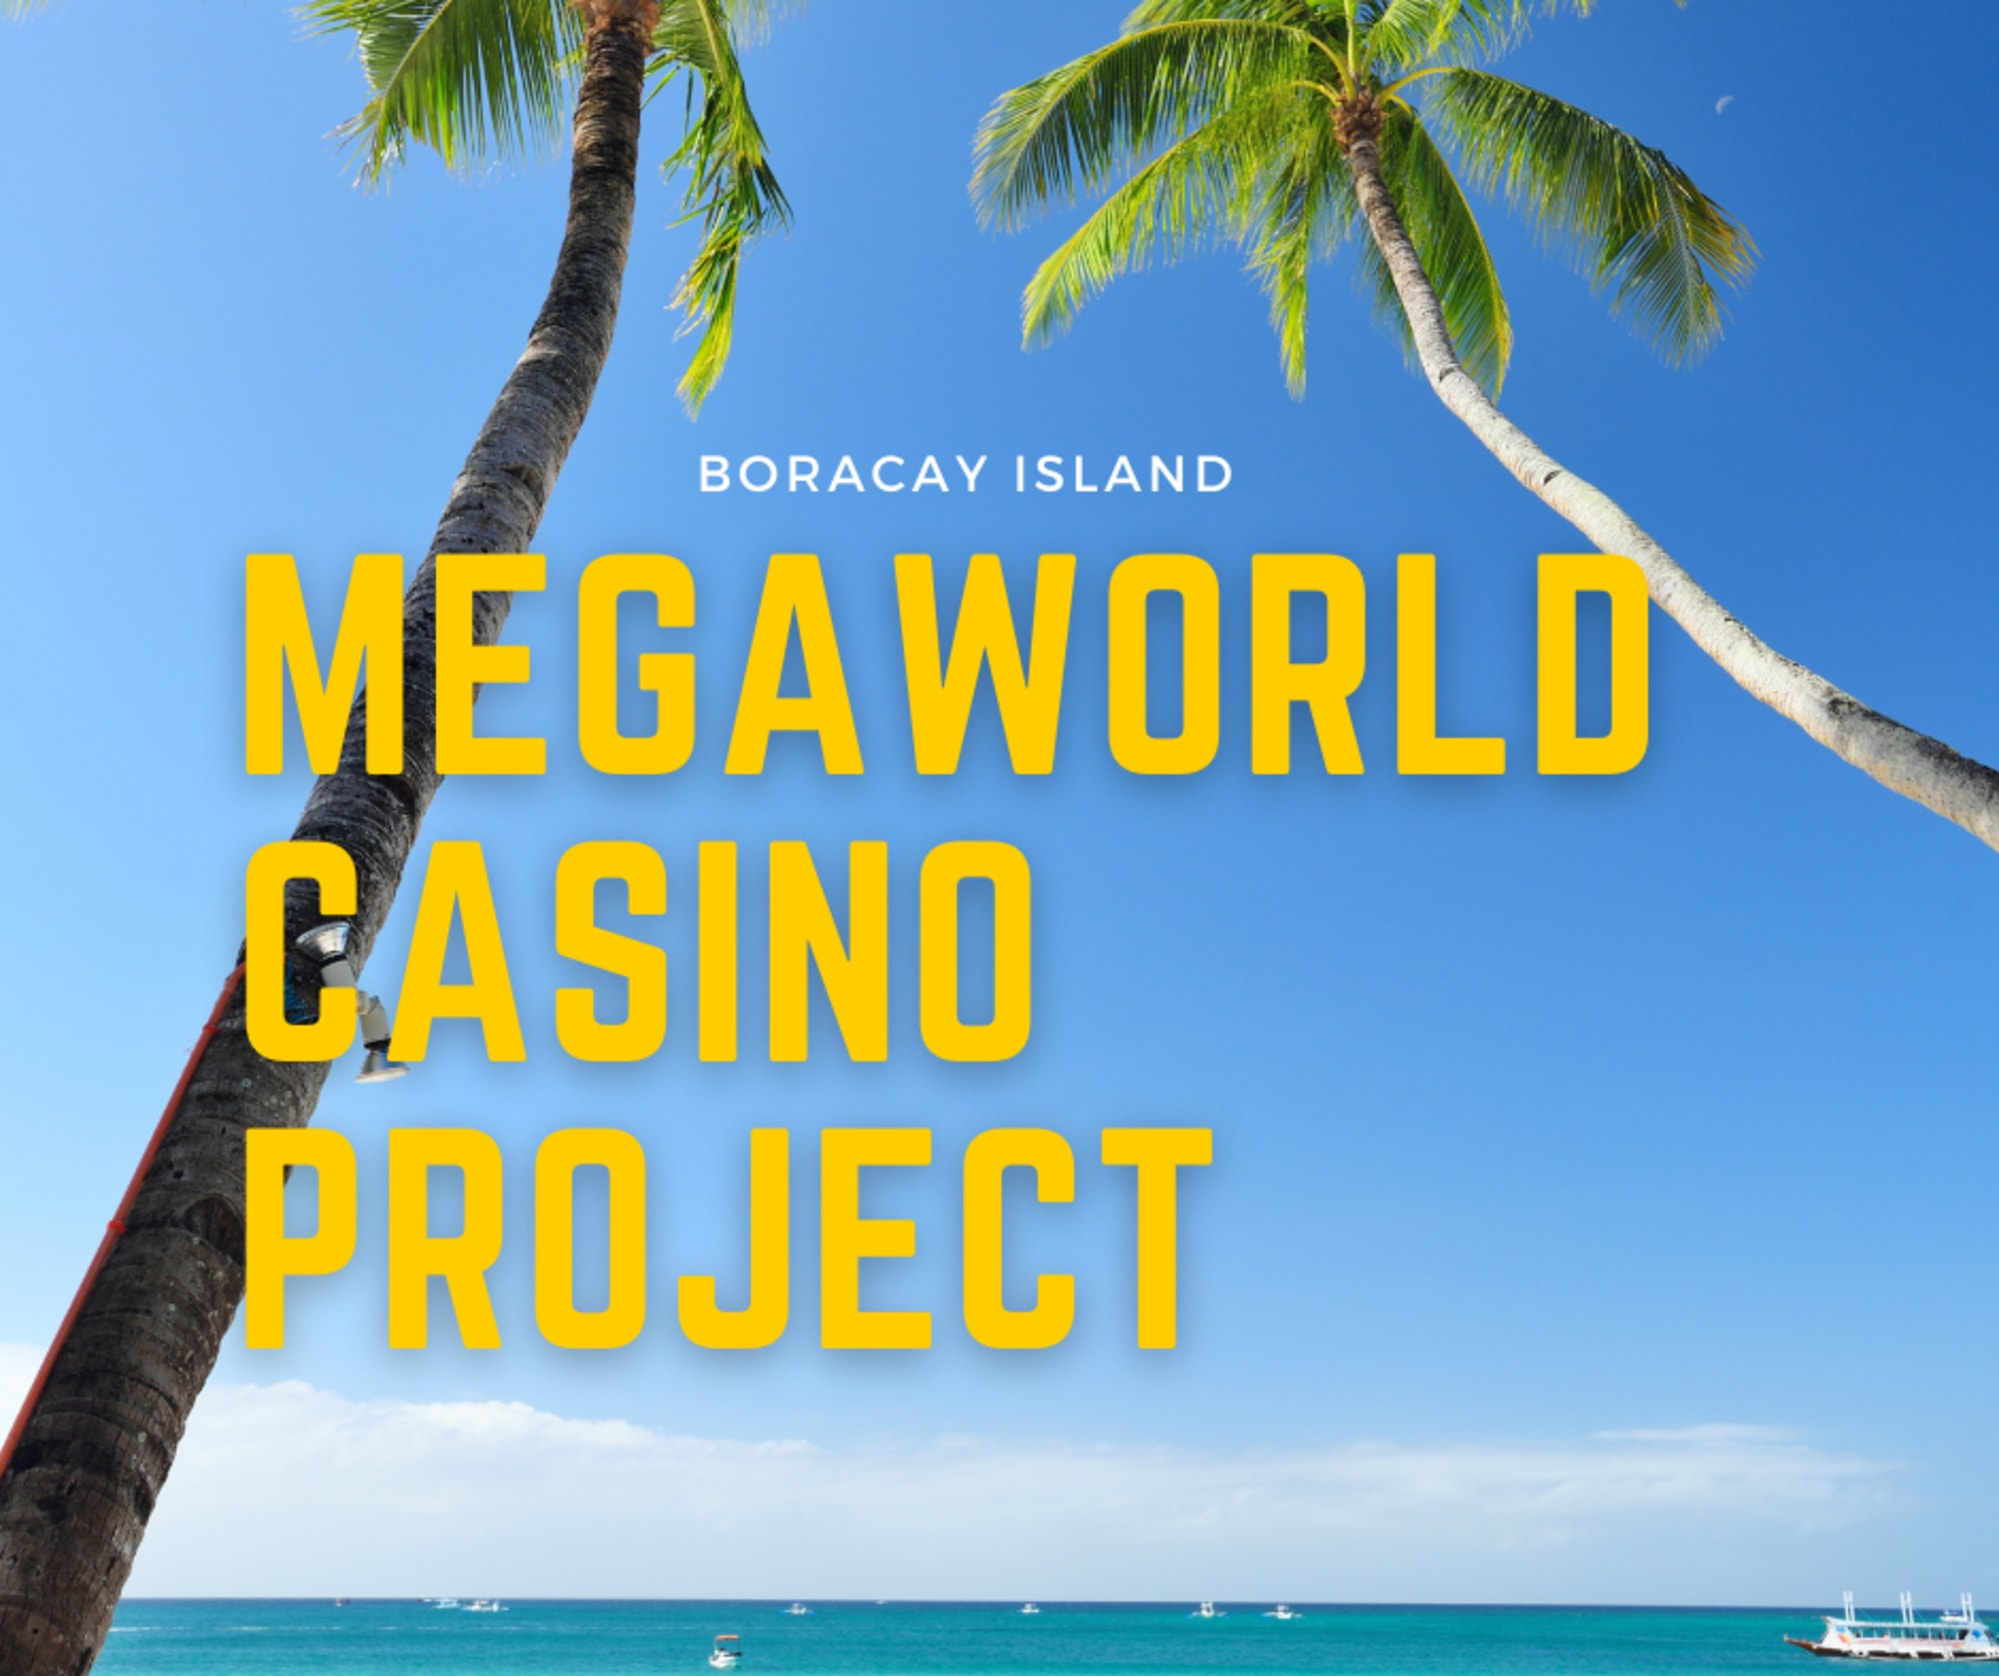 Tycoon Andrew Tan confirmed Megaworld is set to proceed with the casino project in Boracay